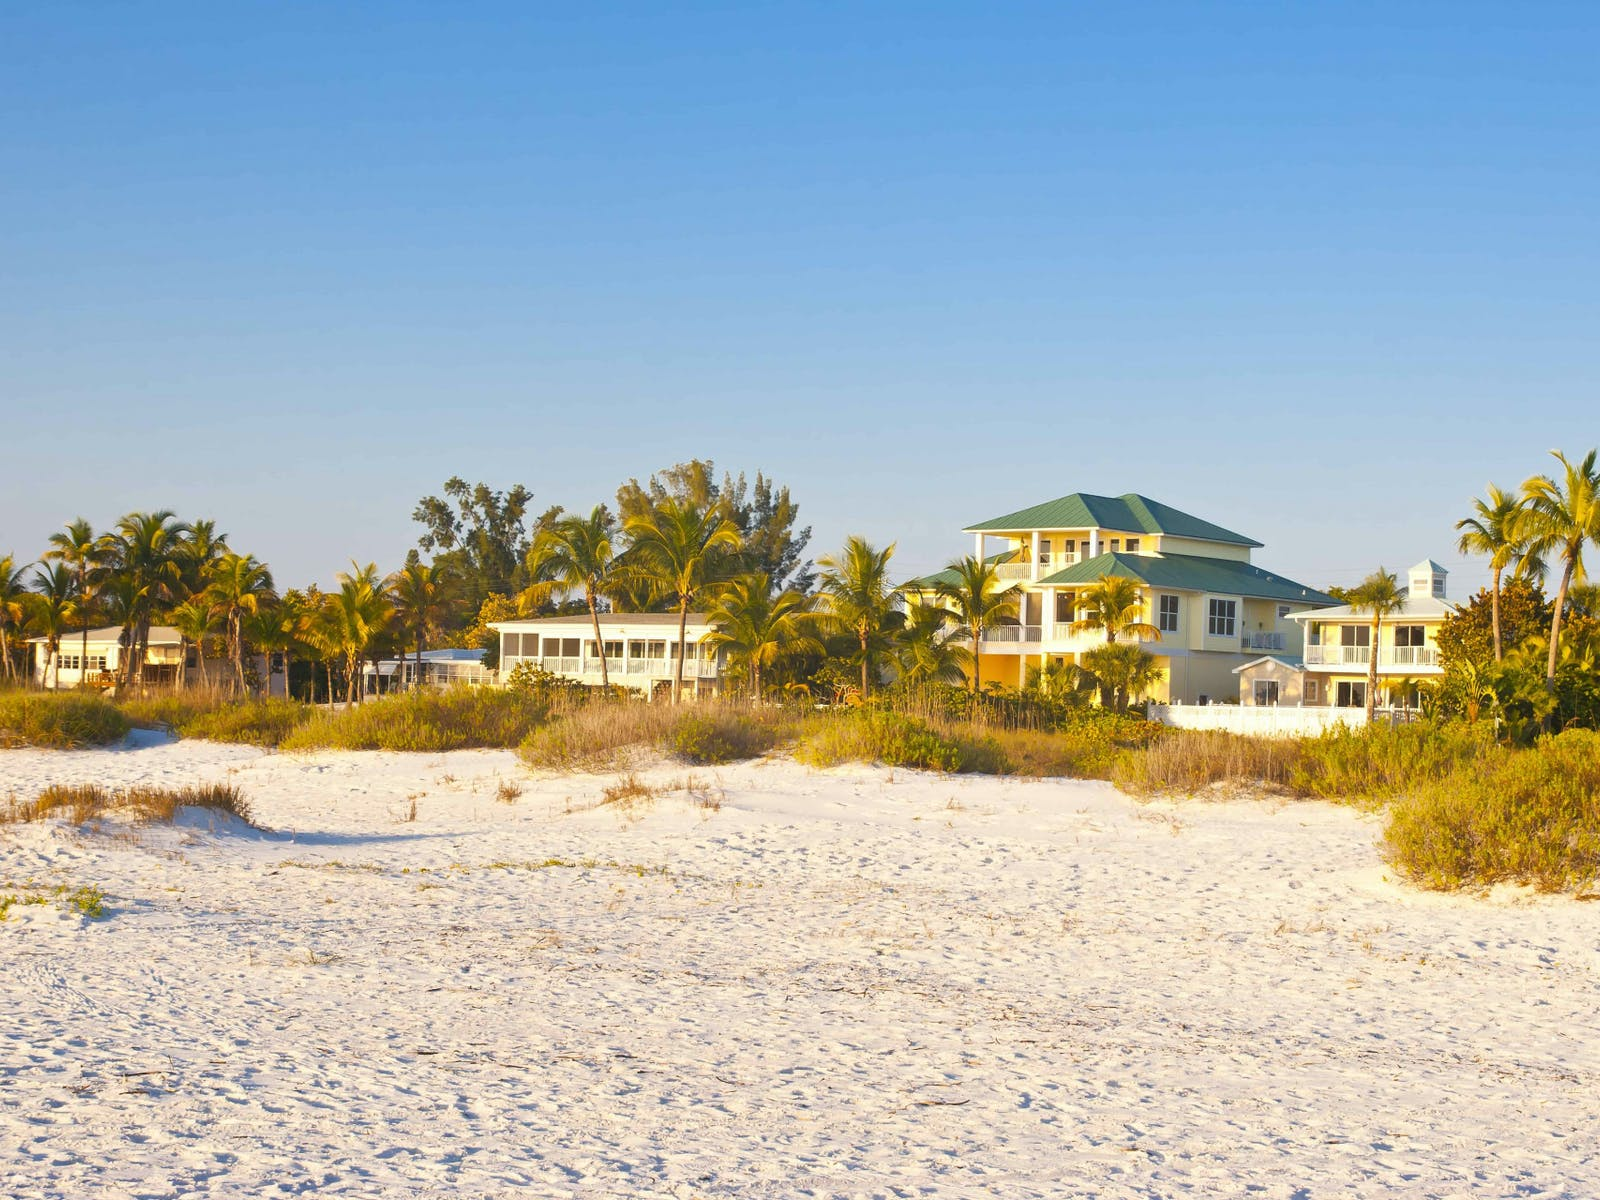 houses and palm trees by the beach in Fort Myers, Florida